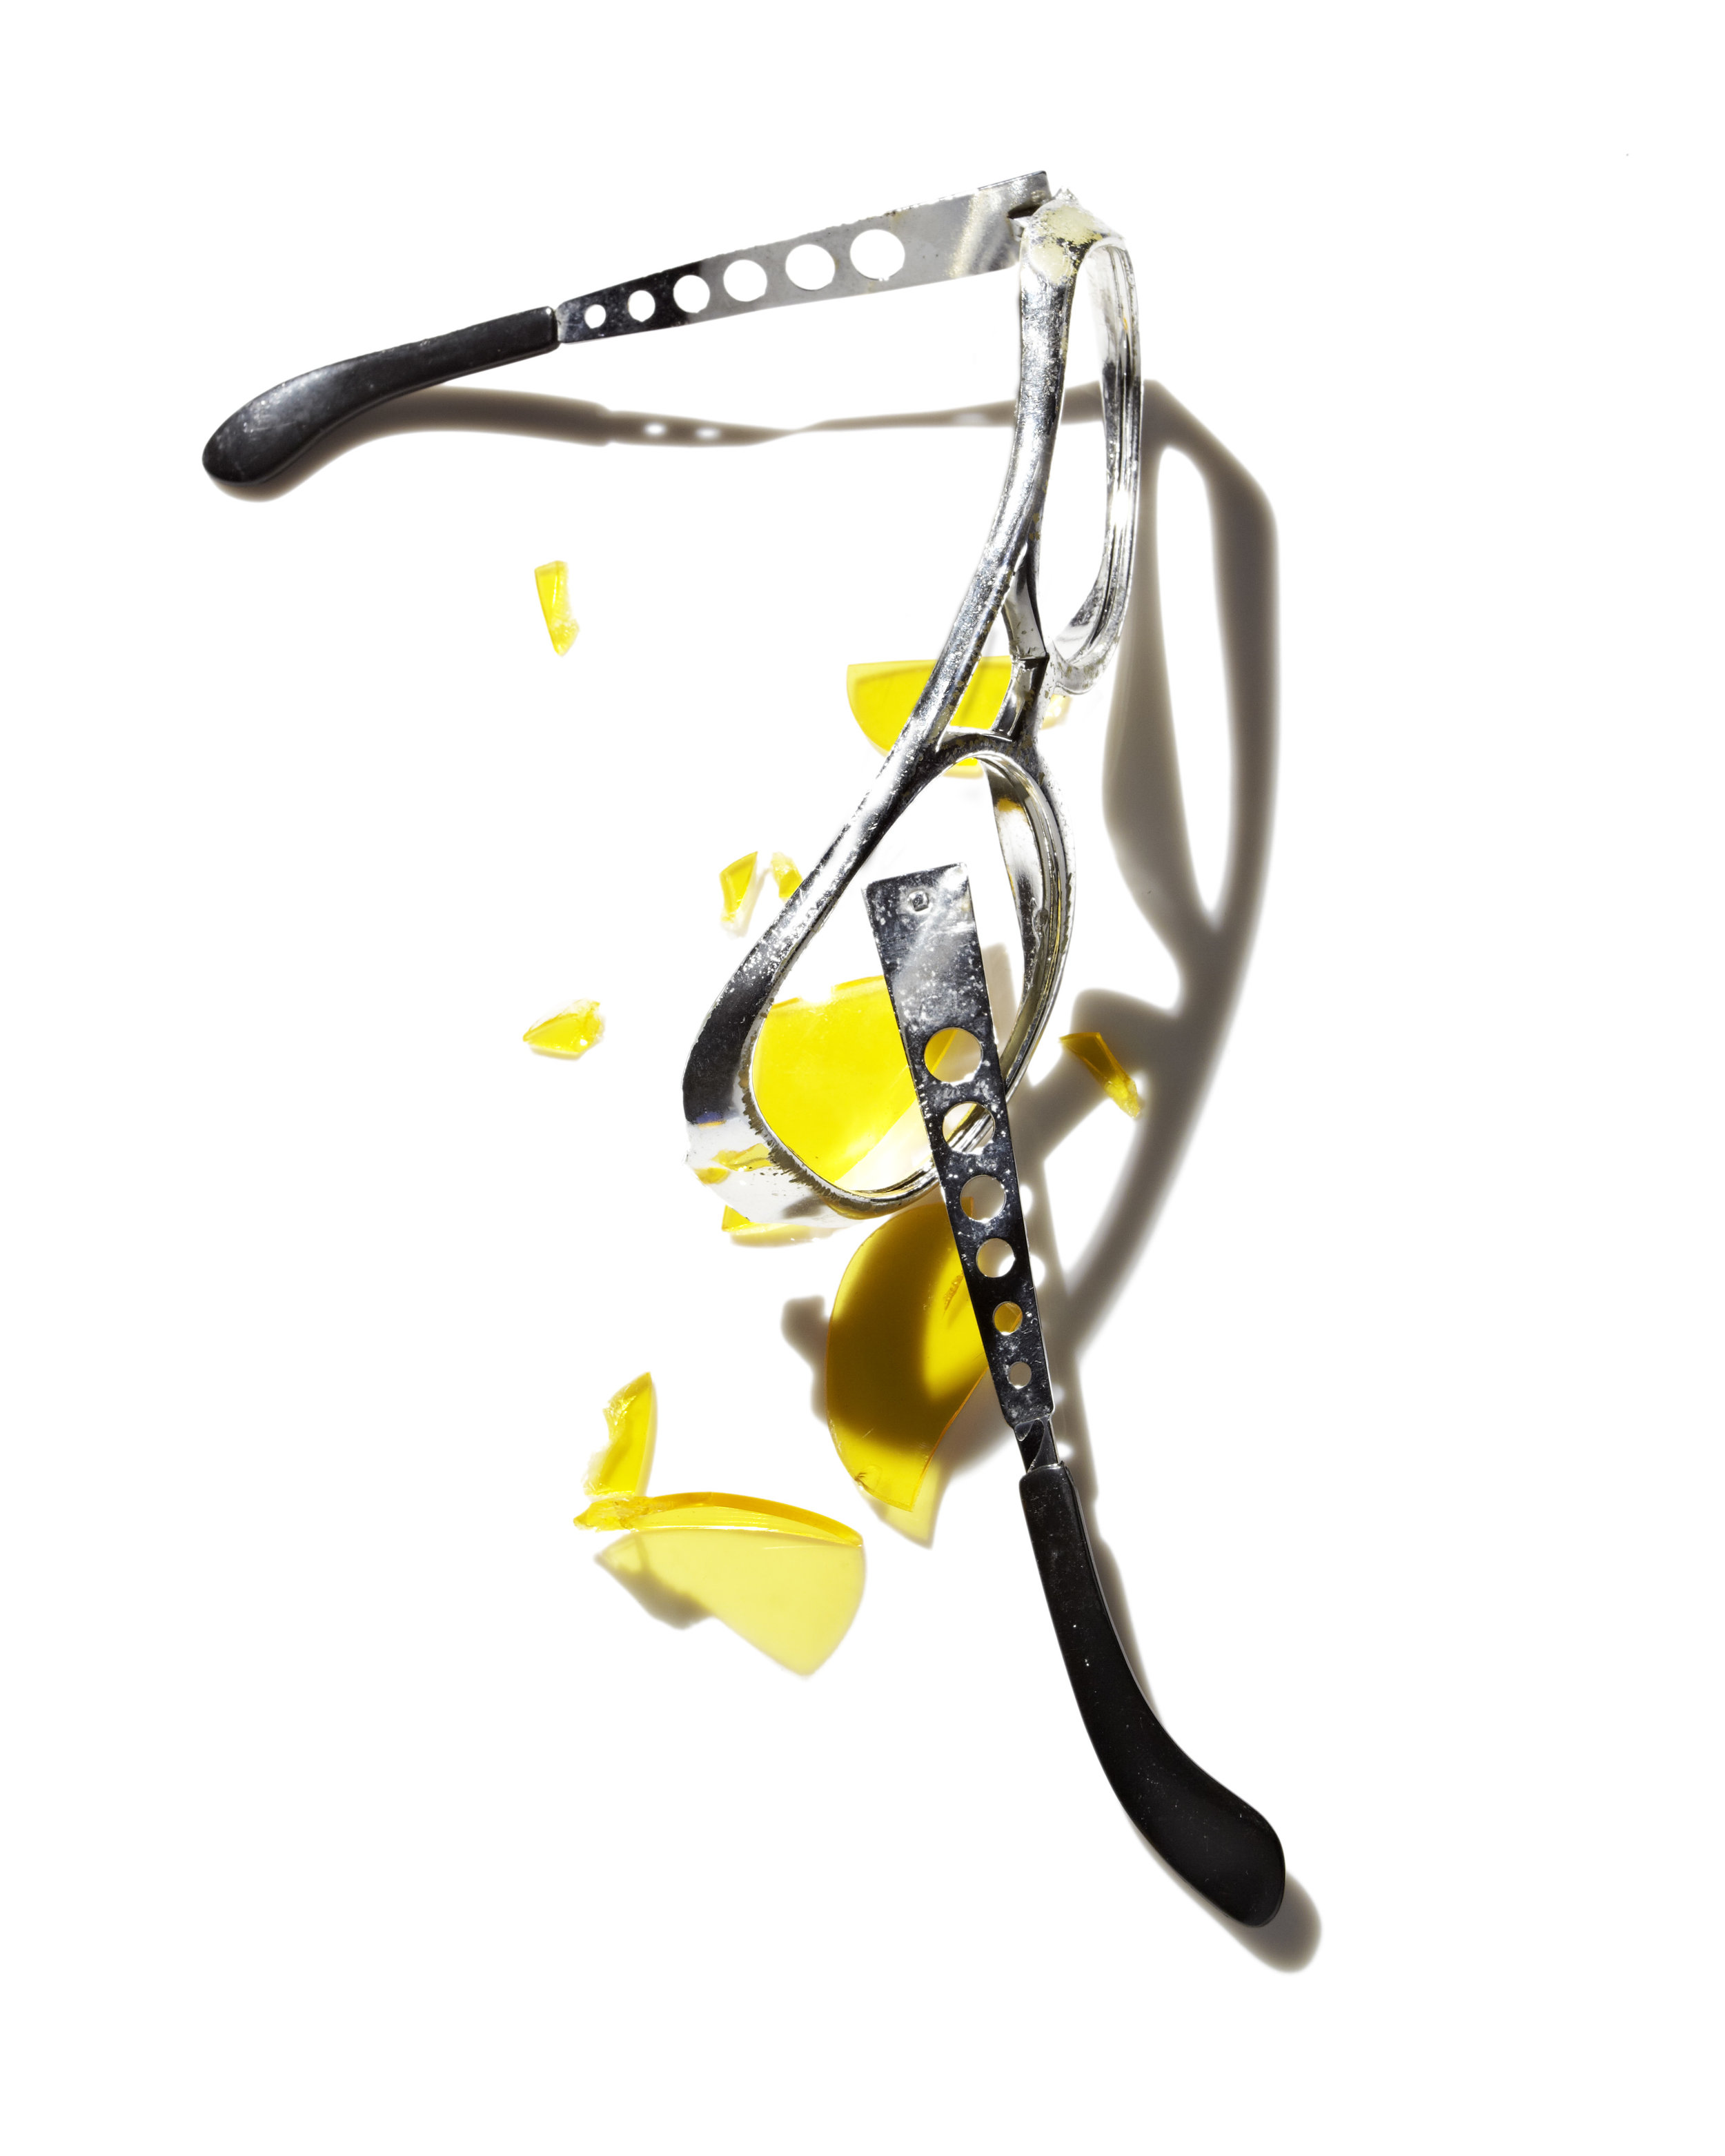 YellowGlasses120710 1180.jpg